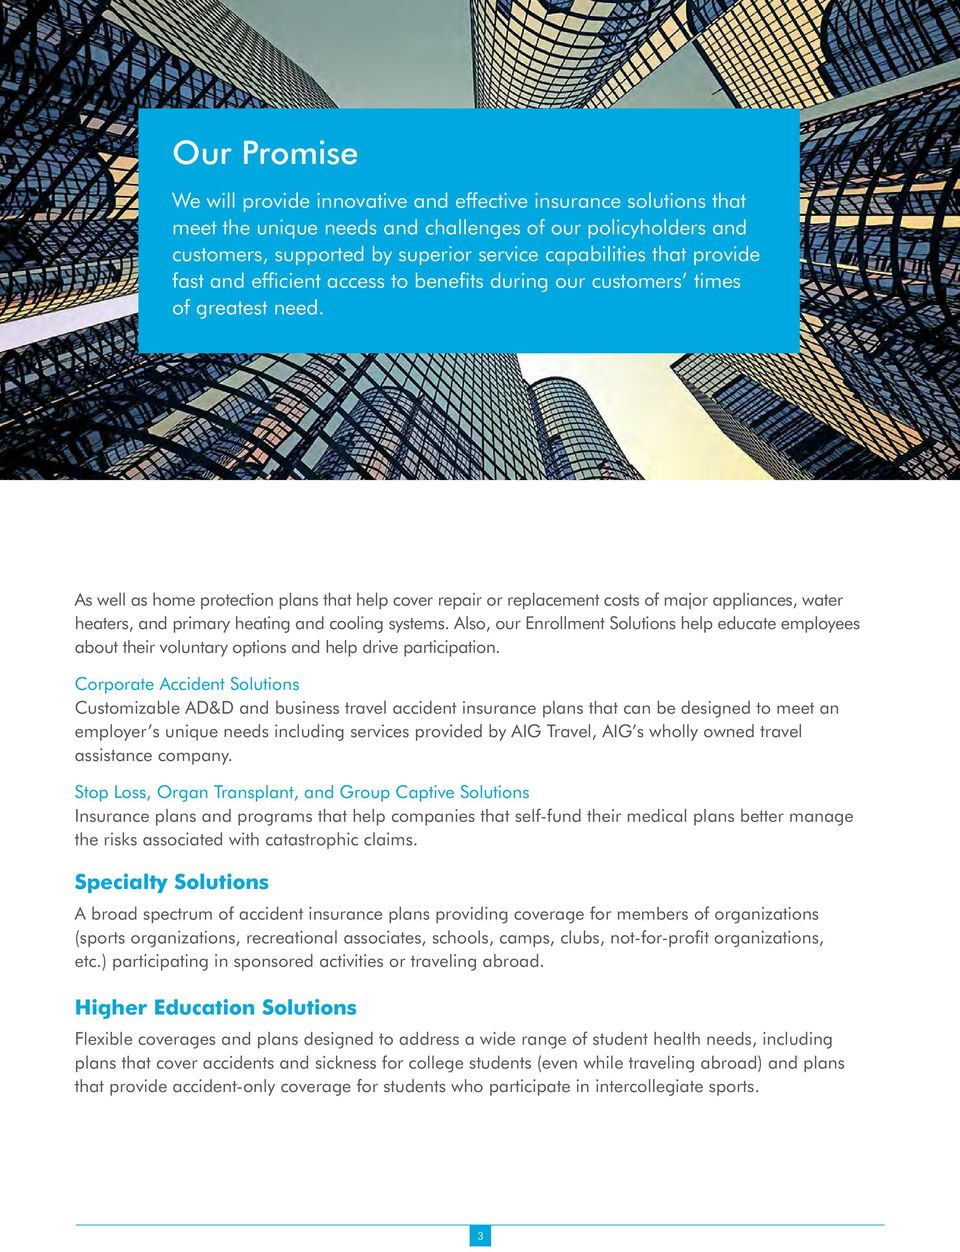 Overview Brochure Aig Benefit Solutions Providing